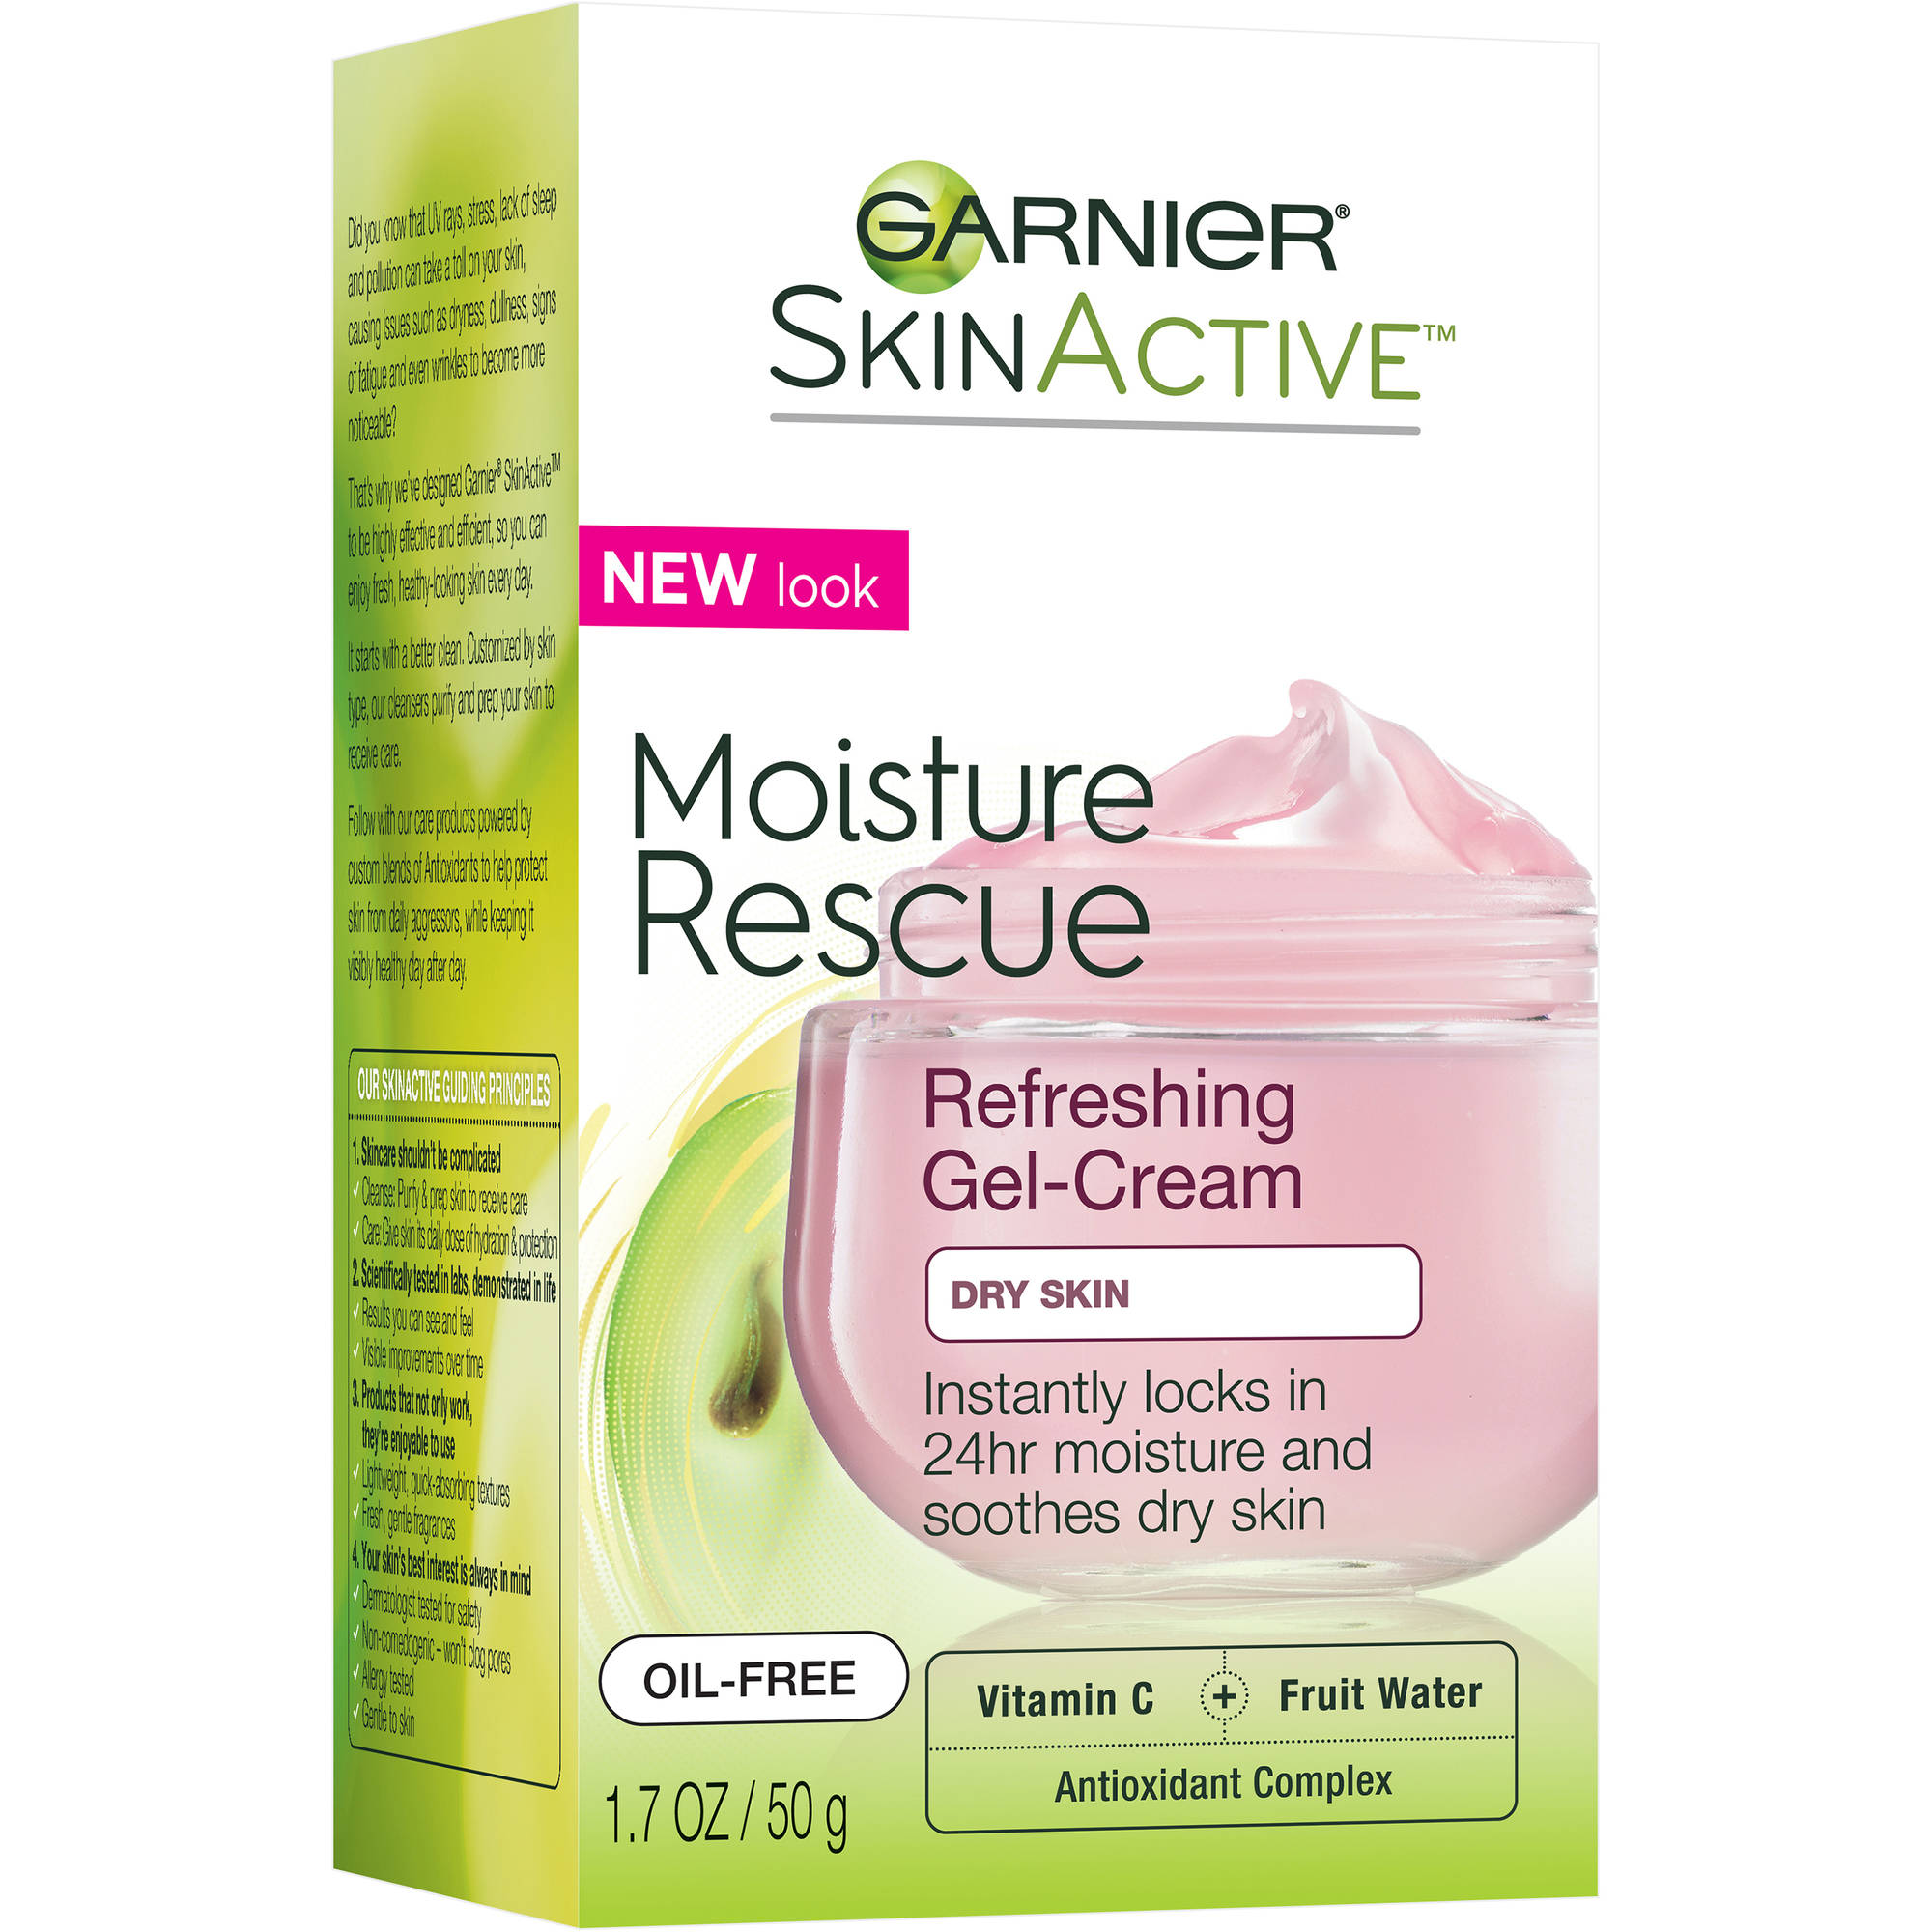 Garnier SkinActive Moisture Rescue Refreshing Gel-Cream for Dry Skin, 1.7 oz